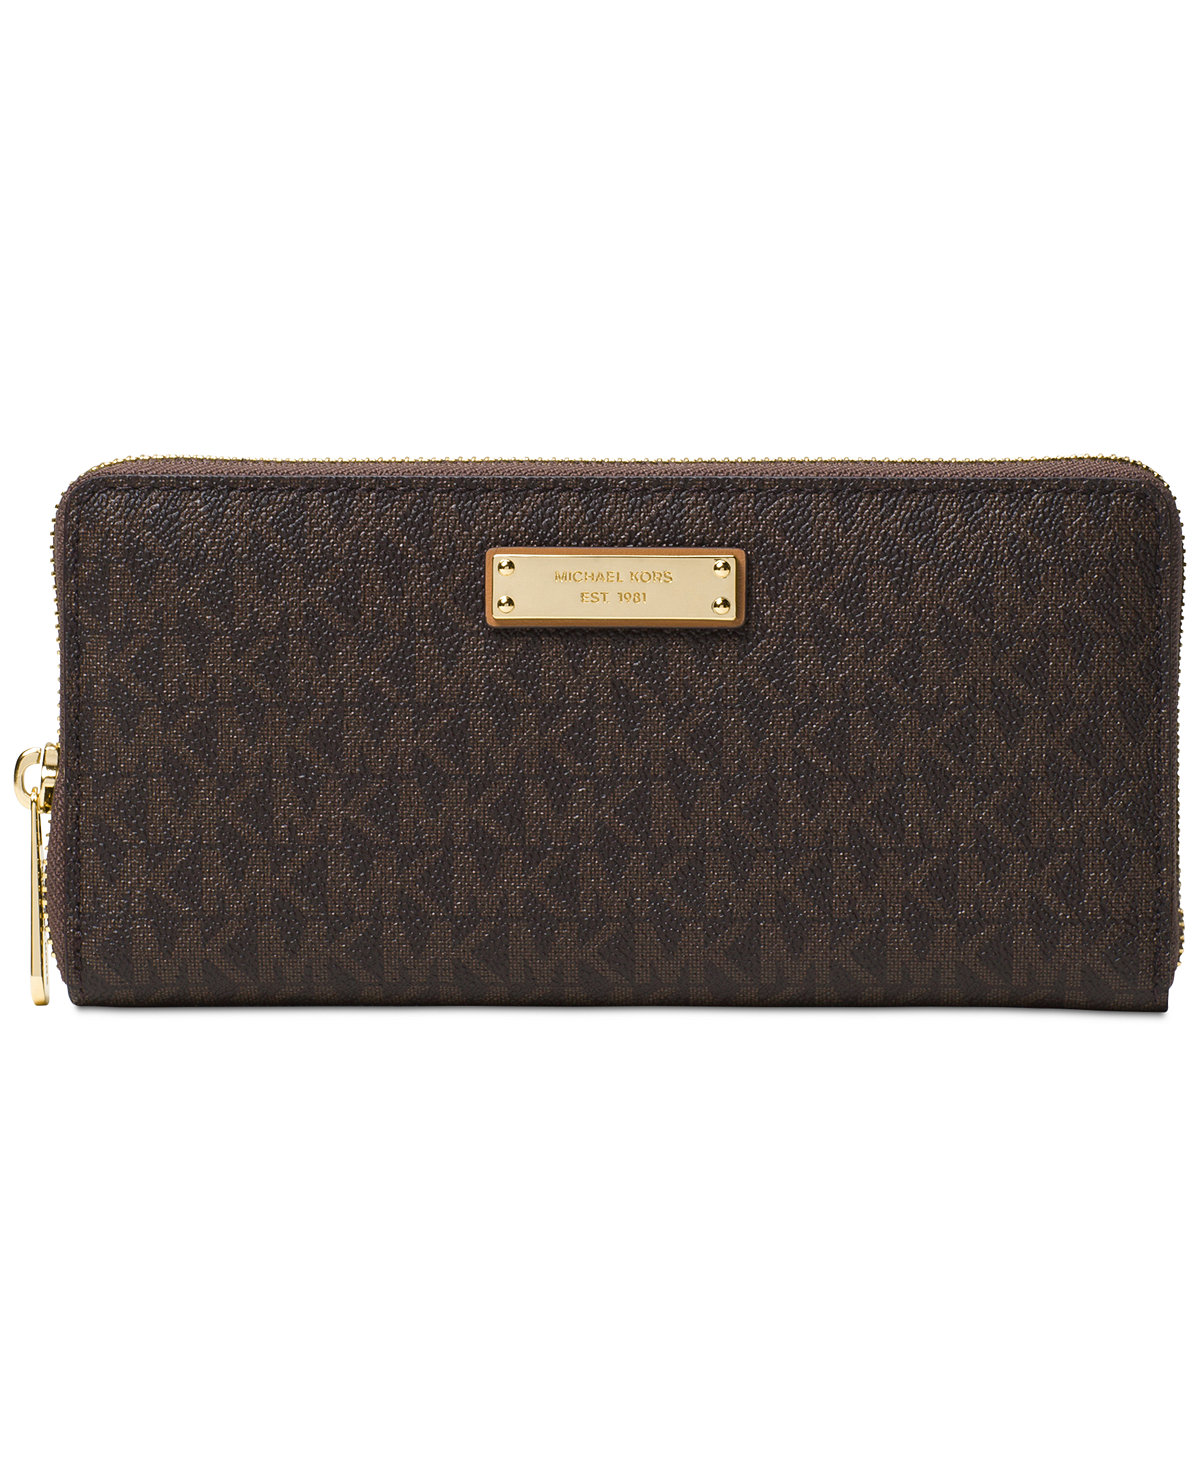 d4ee9c4cb4d0 Grab this MICHAEL Michael Kors Signature Jet Set Item Zip Around  Continental Wallet on sale for $66.60 (Reg. $148) over on Macys. Plus, this  item ships for ...